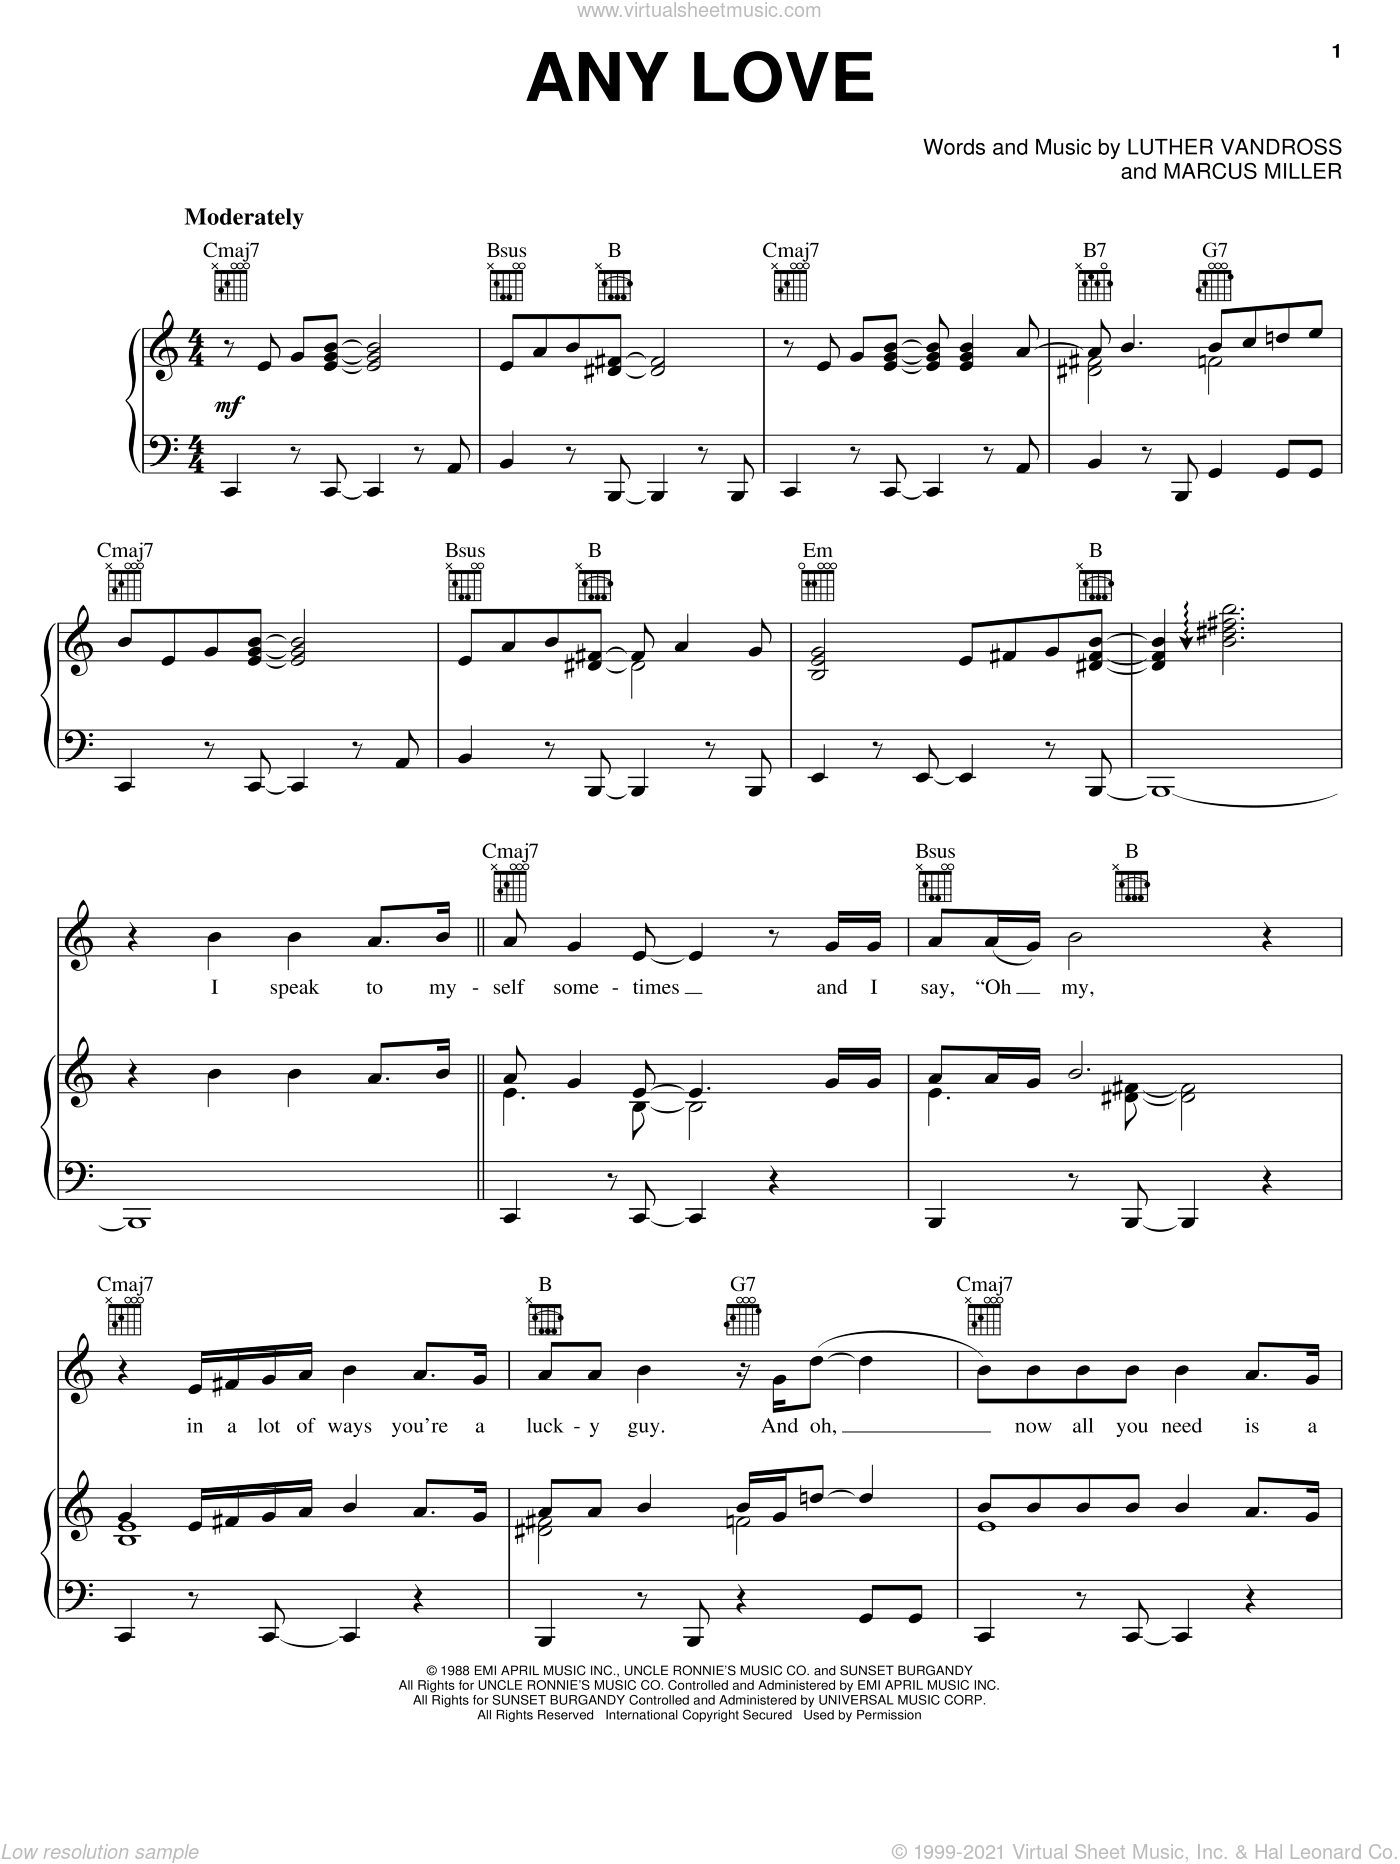 Any Love sheet music for voice, piano or guitar by Marcus Miller